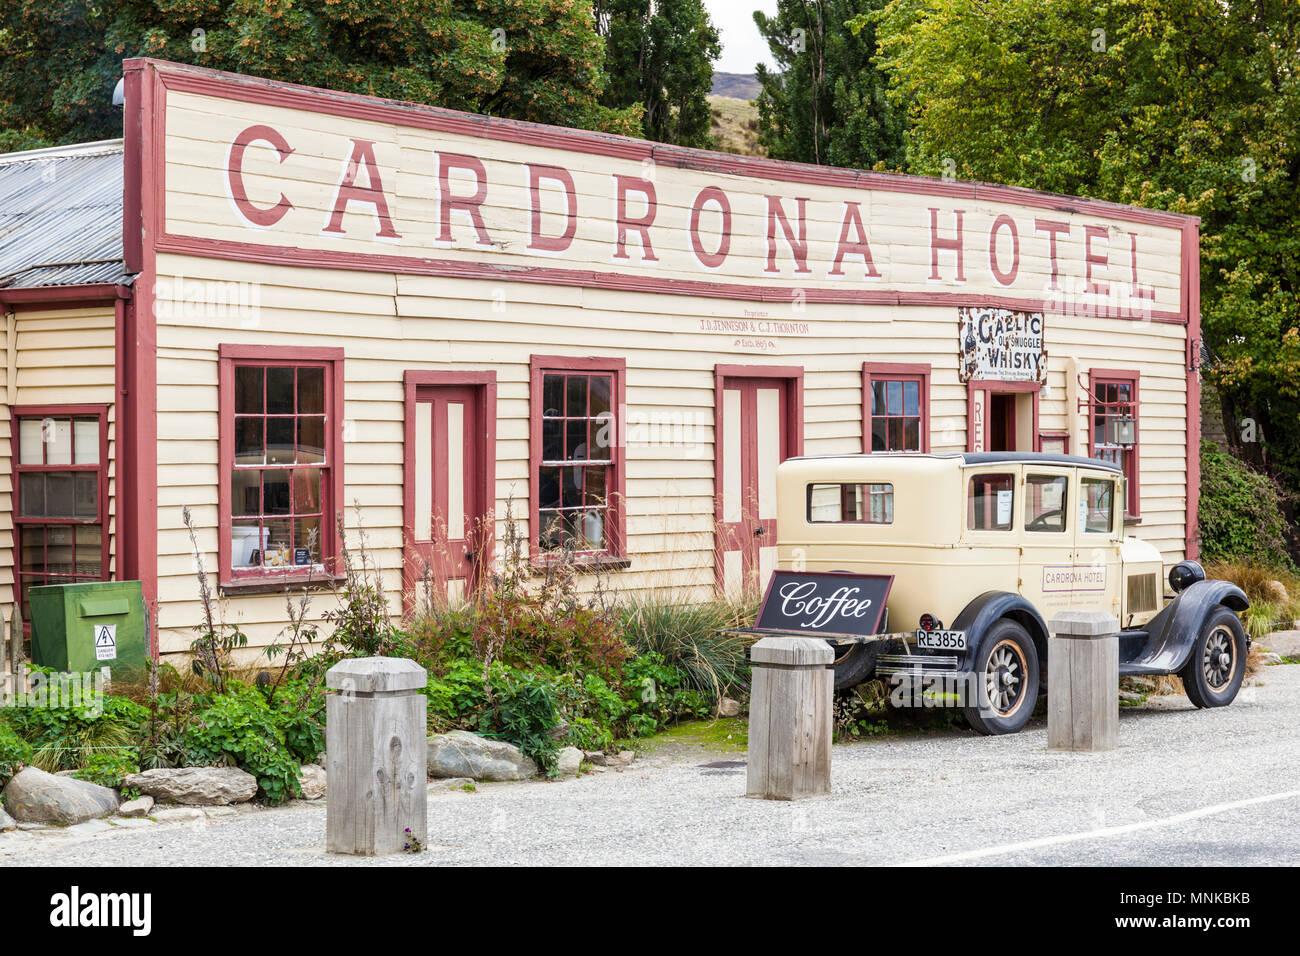 new zealand cardrona hotel in a former goldrush town Crown Range road cardrona New Zealand South Island - Stock Image